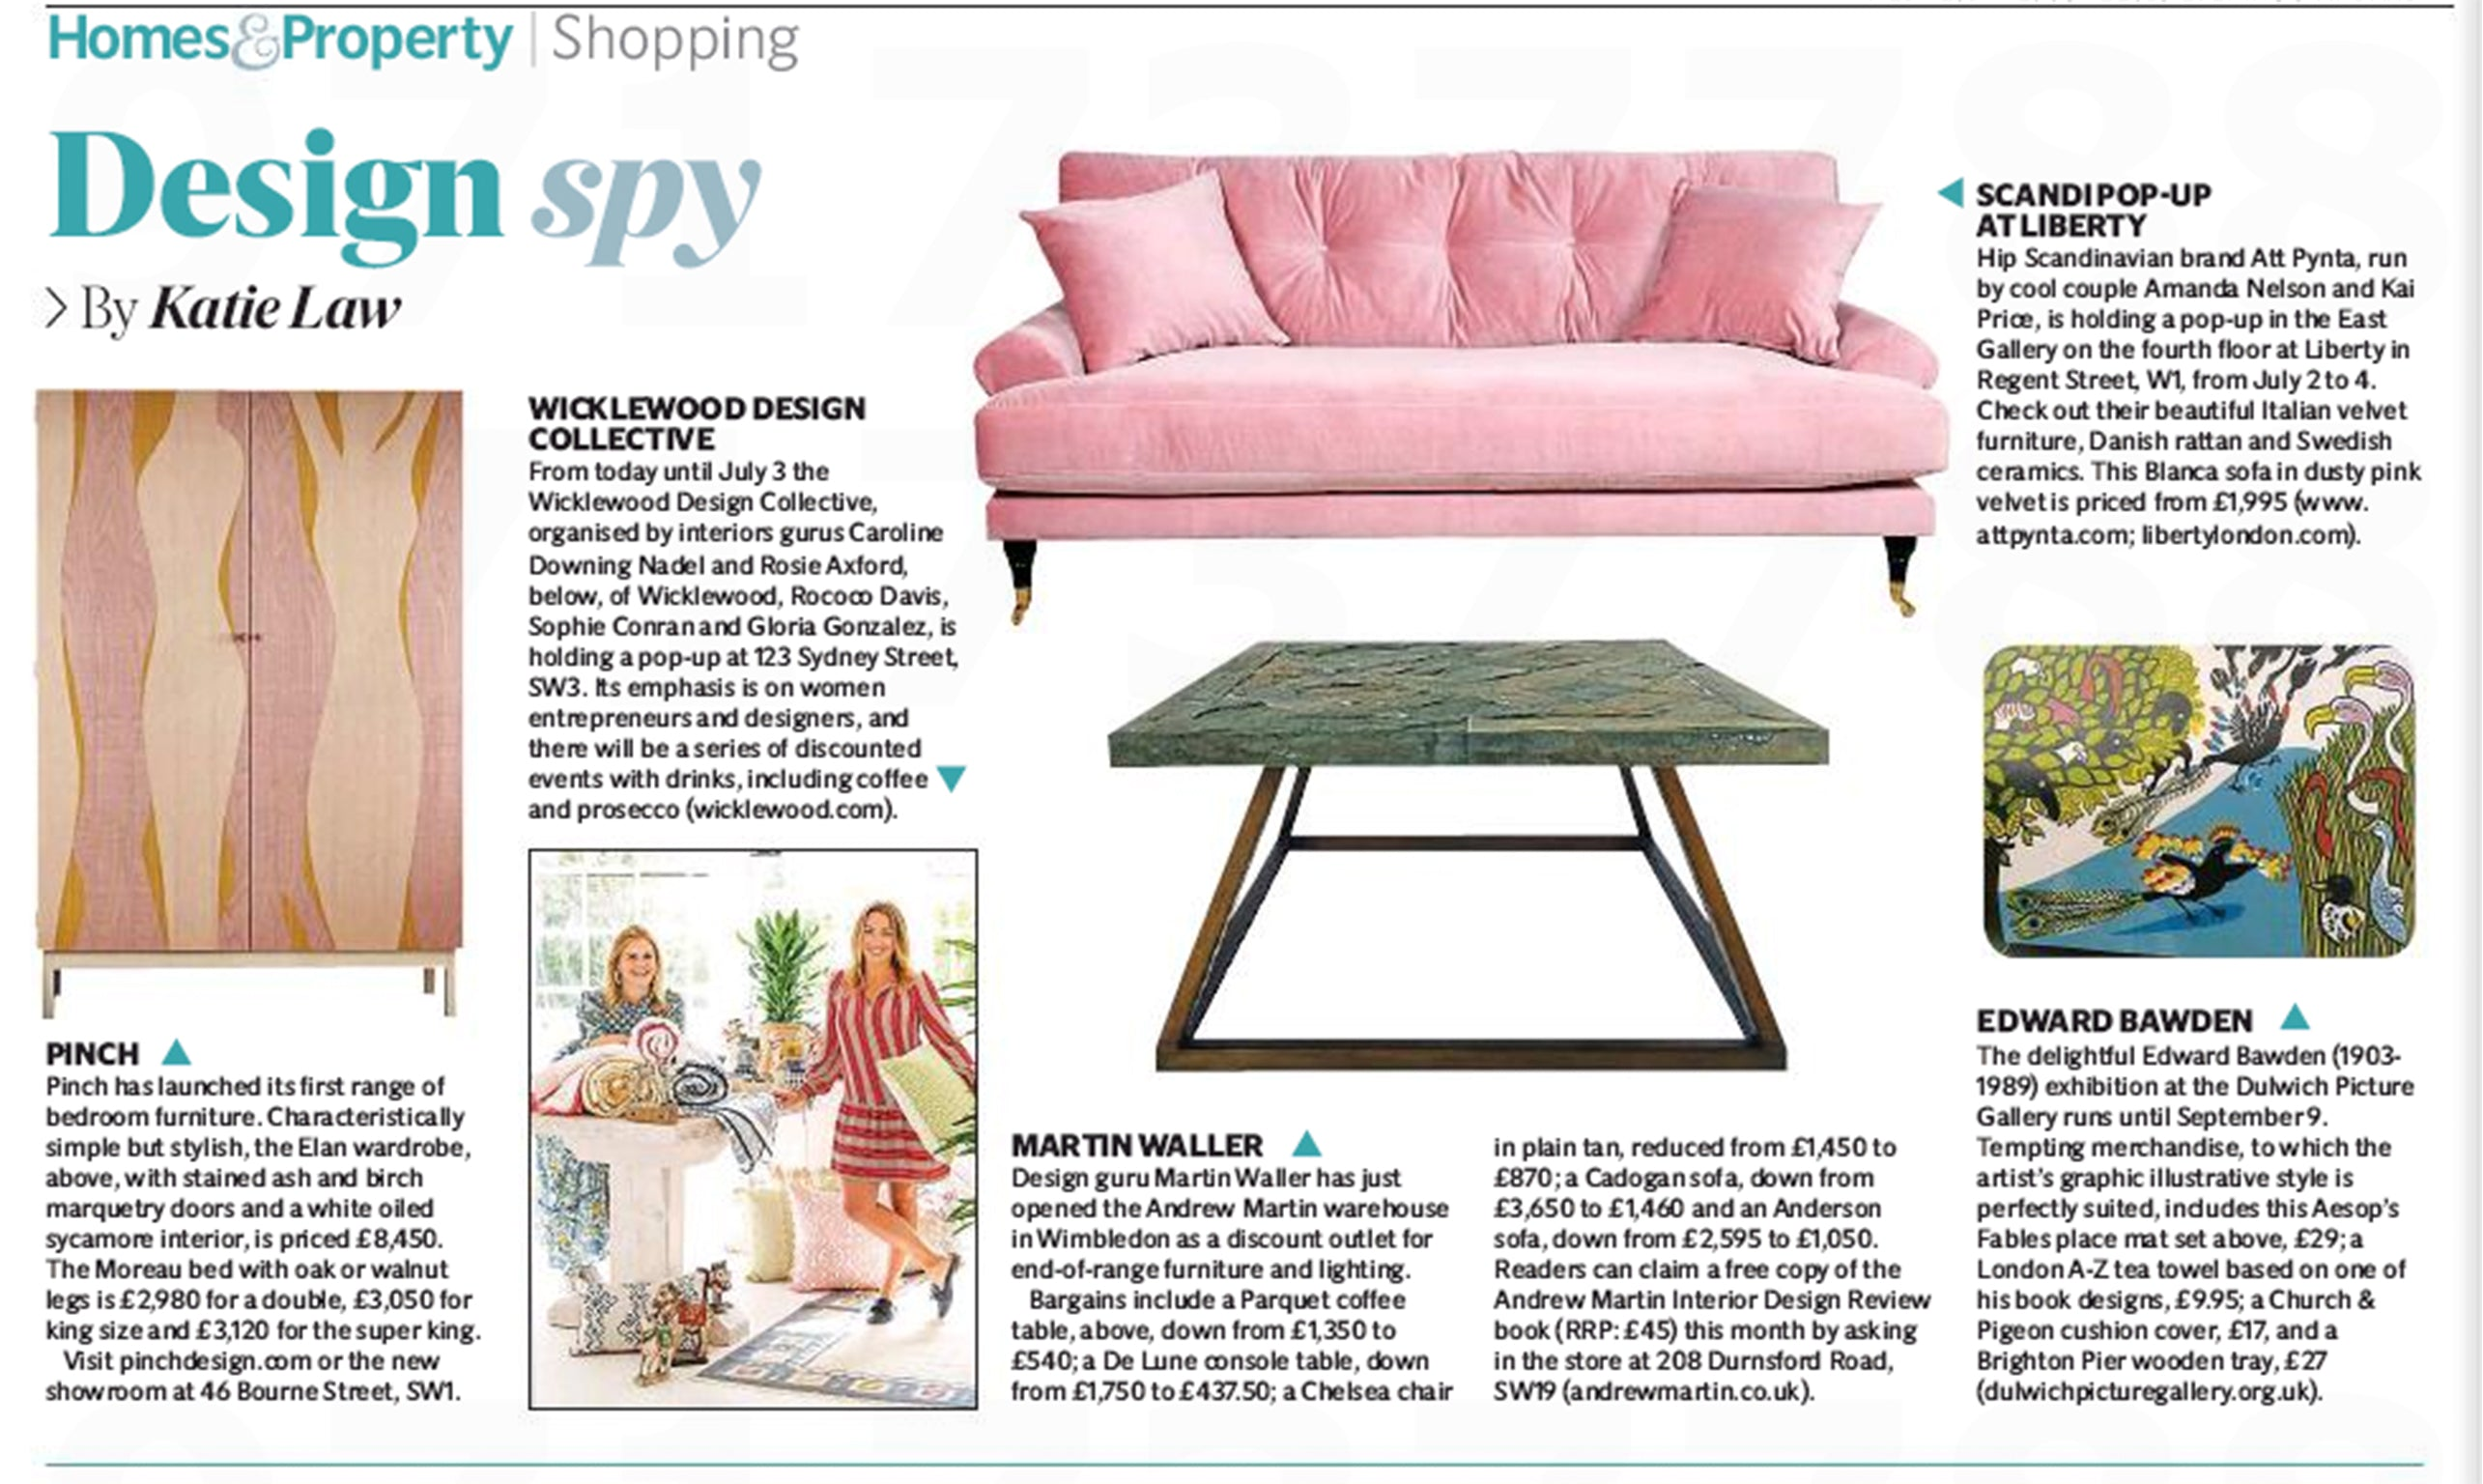 Wicklewood Press | The Evening Standard | Design Spy - The Wicklewood Design Collective